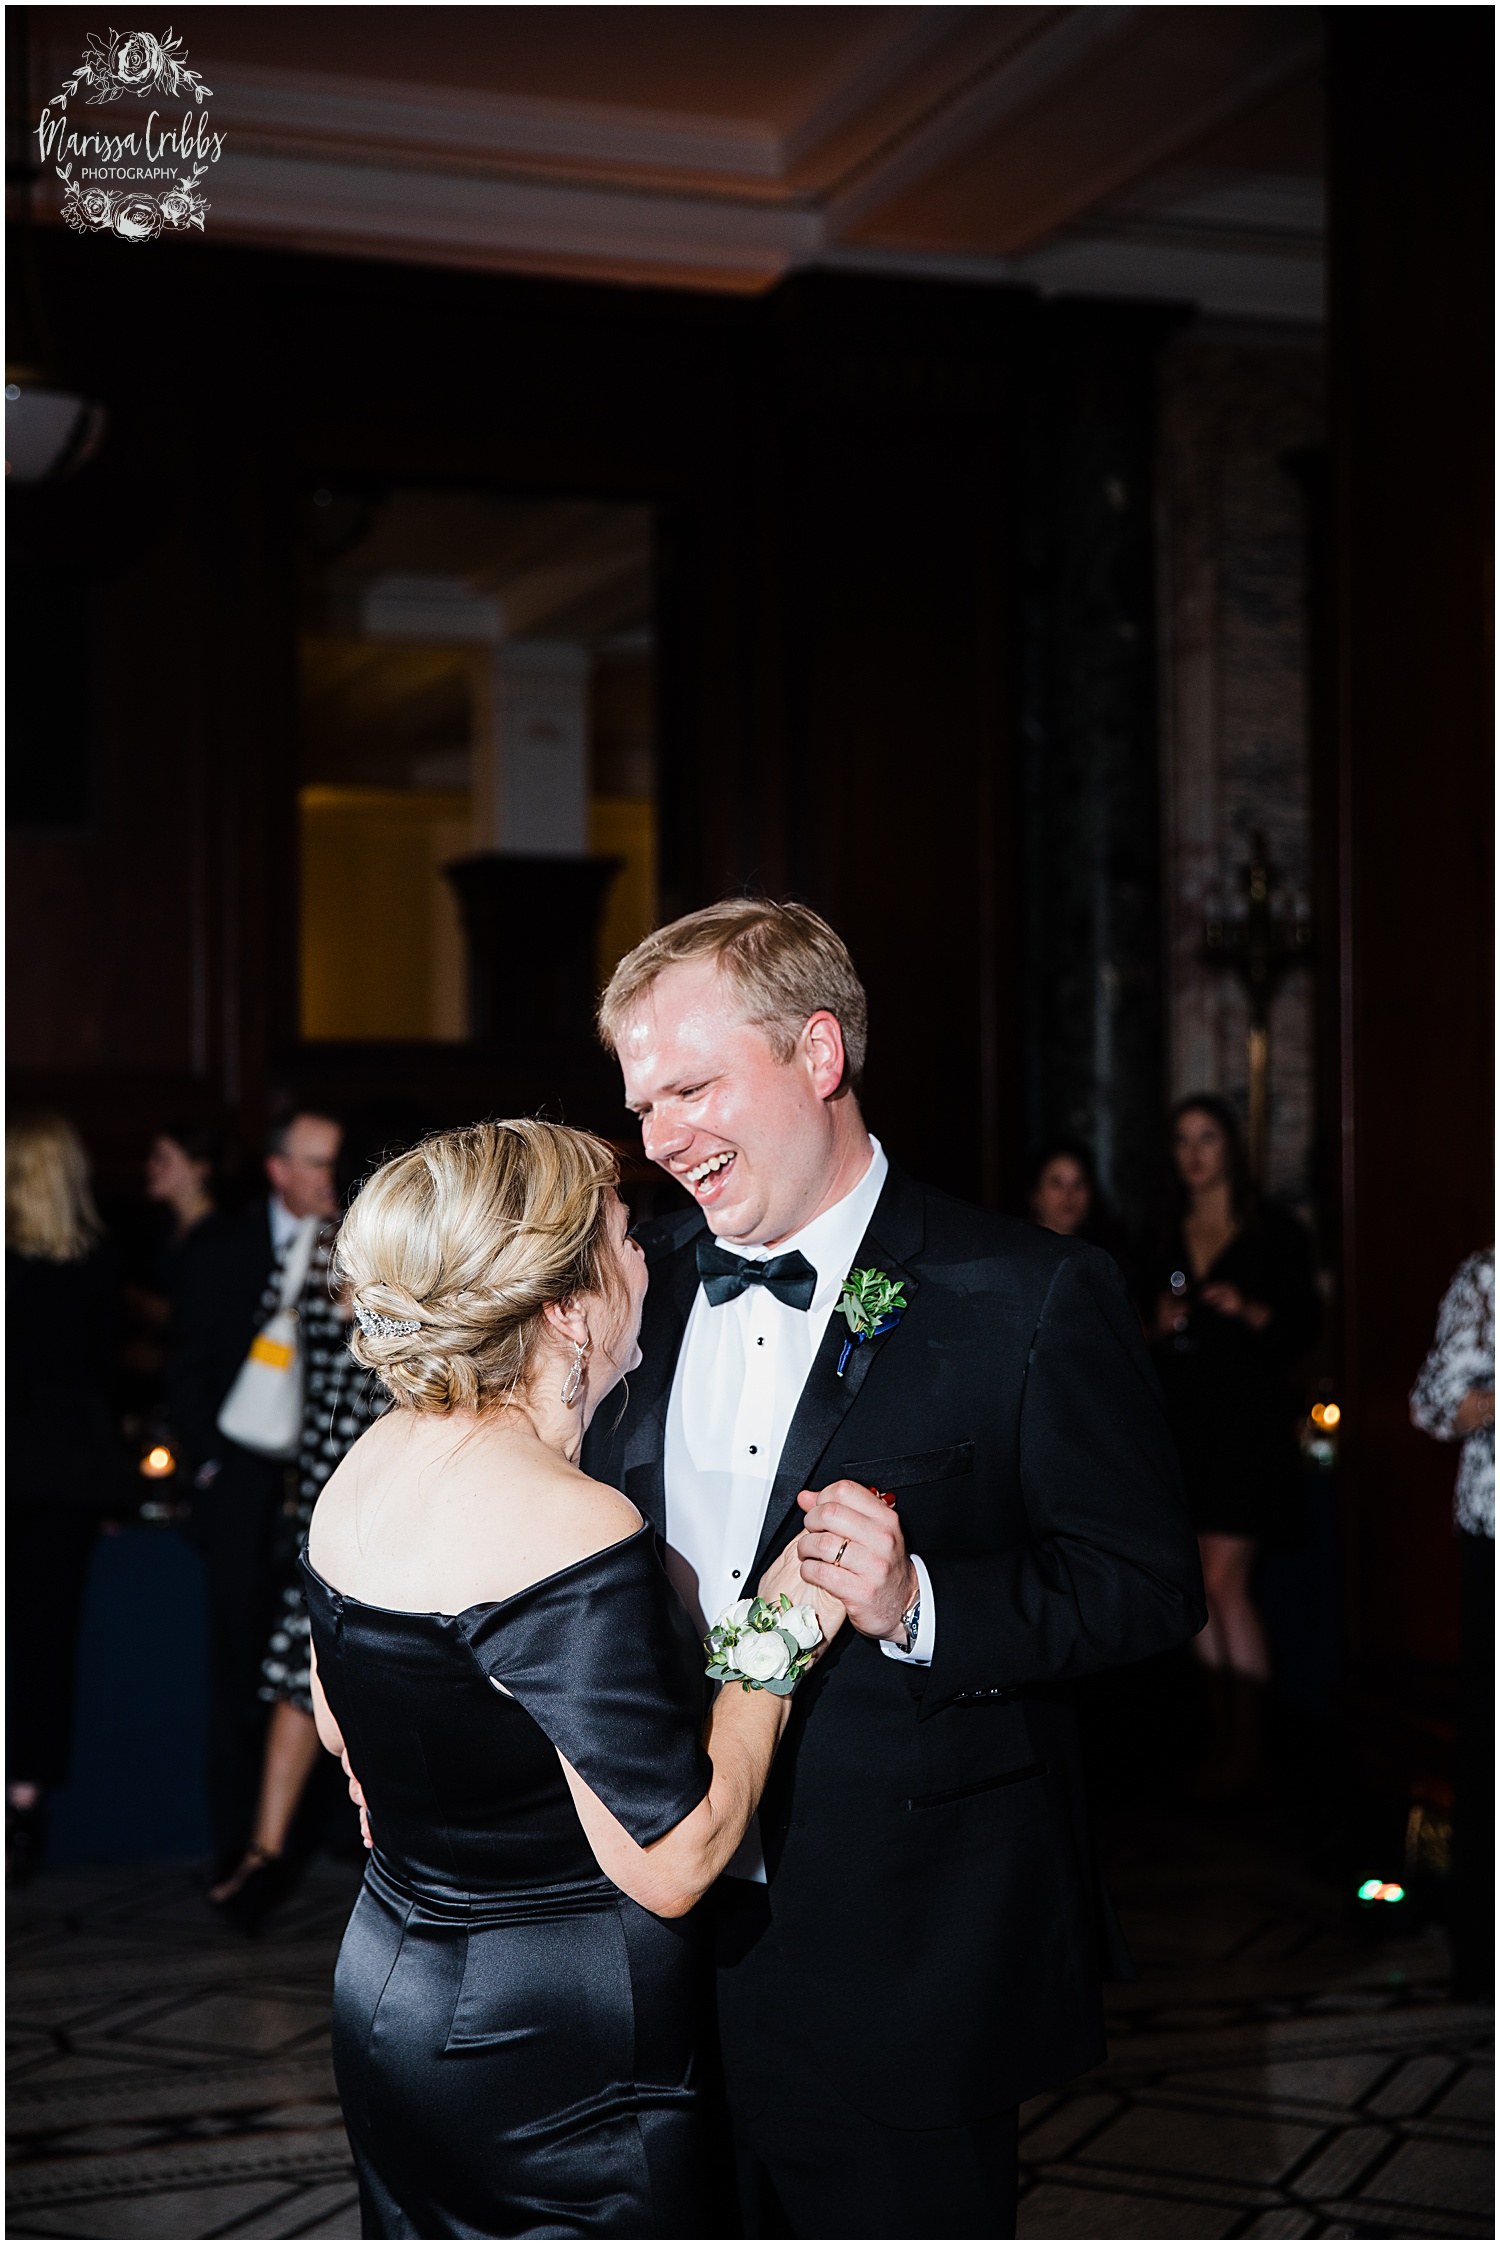 RACHEL & SCOTT MARRIED | MARISSA CRIBBS PHOTOGRAPHY_7739.jpg